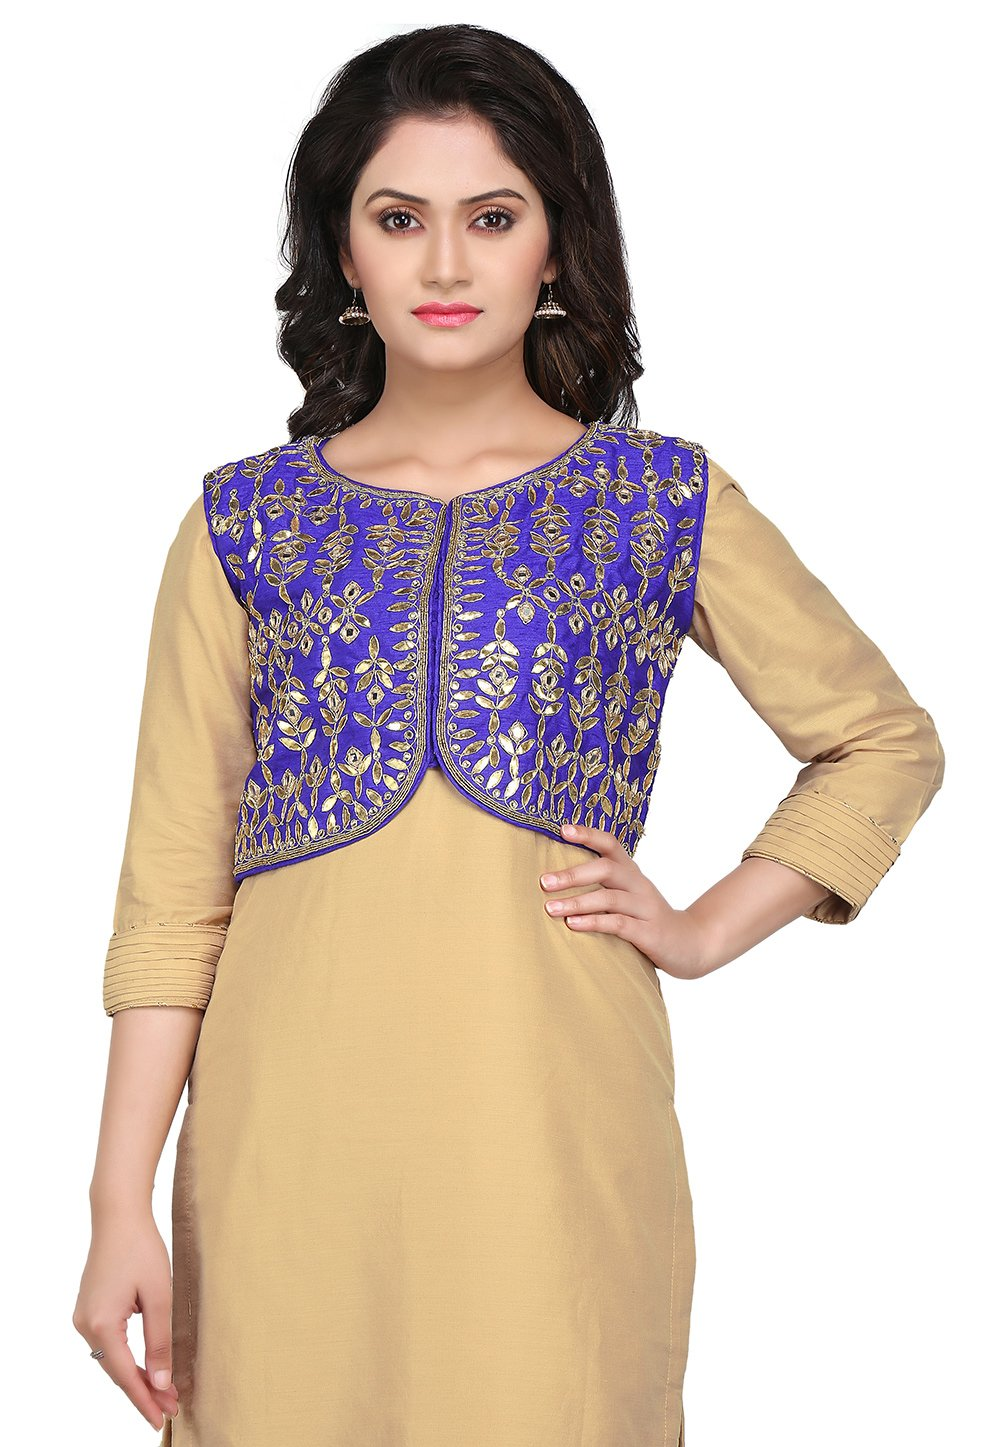 Utsav Fashion Gota Patti Embroidered Dupion Silk Jacket in Blue by Utsav Fashion